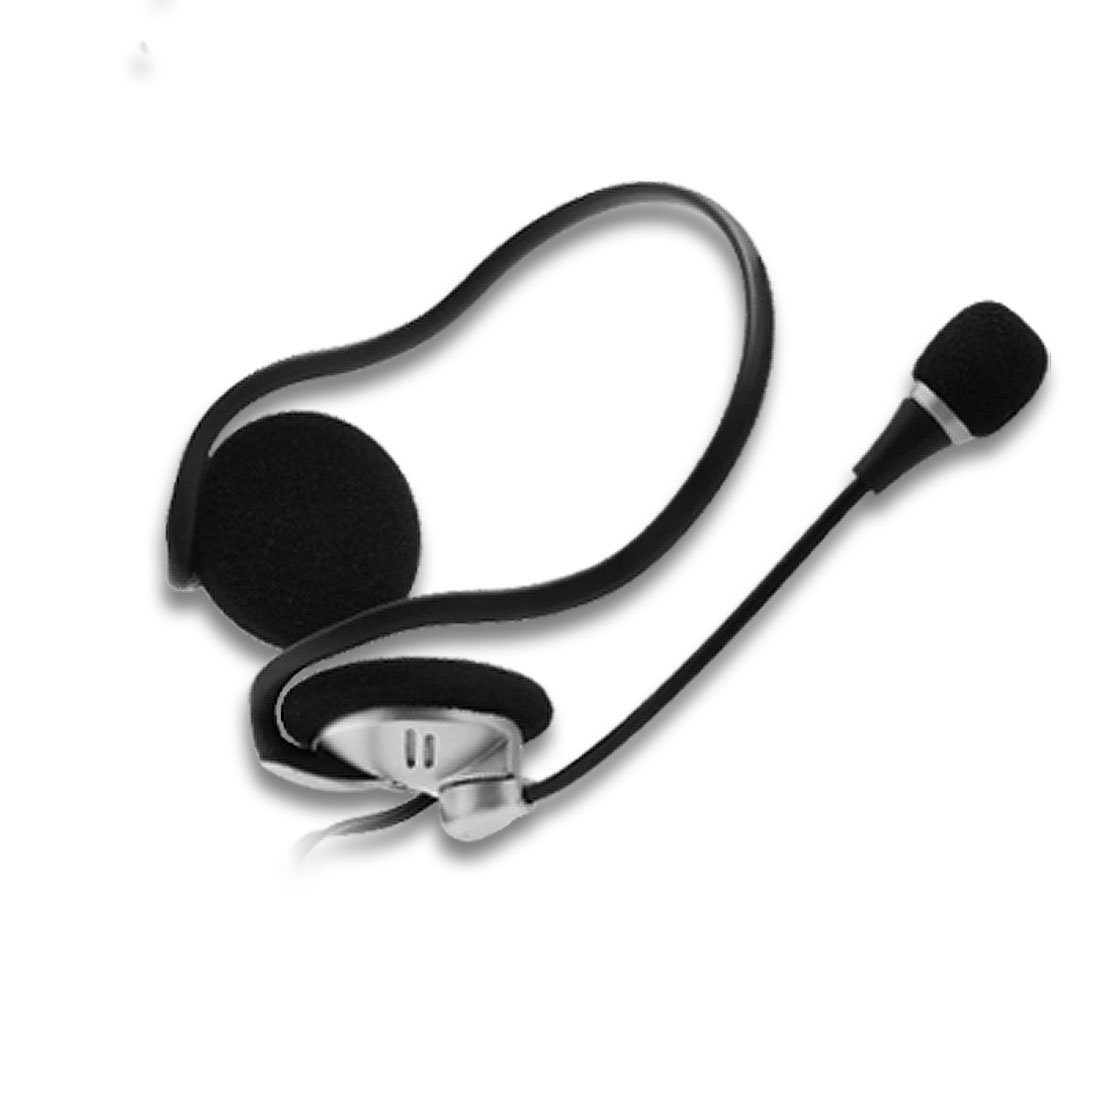 Stereo Computer Volume Adjustable 3.5mm Headphones with Microphone